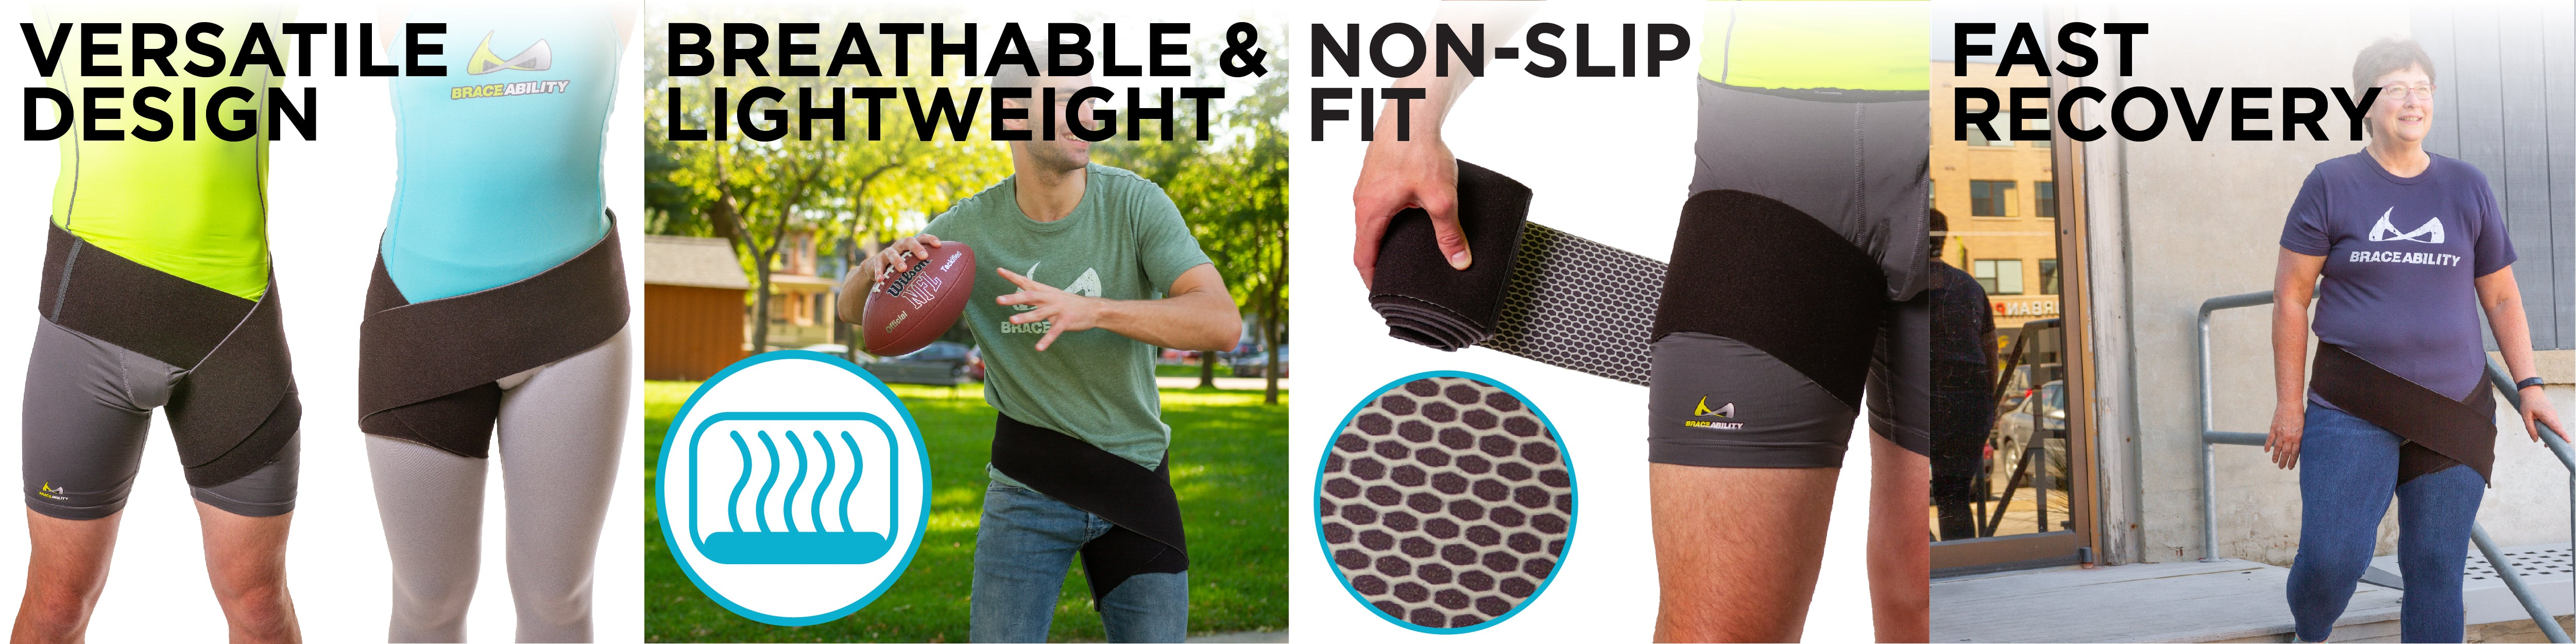 our versatile design makes this hip and groin wrap perfect for sports